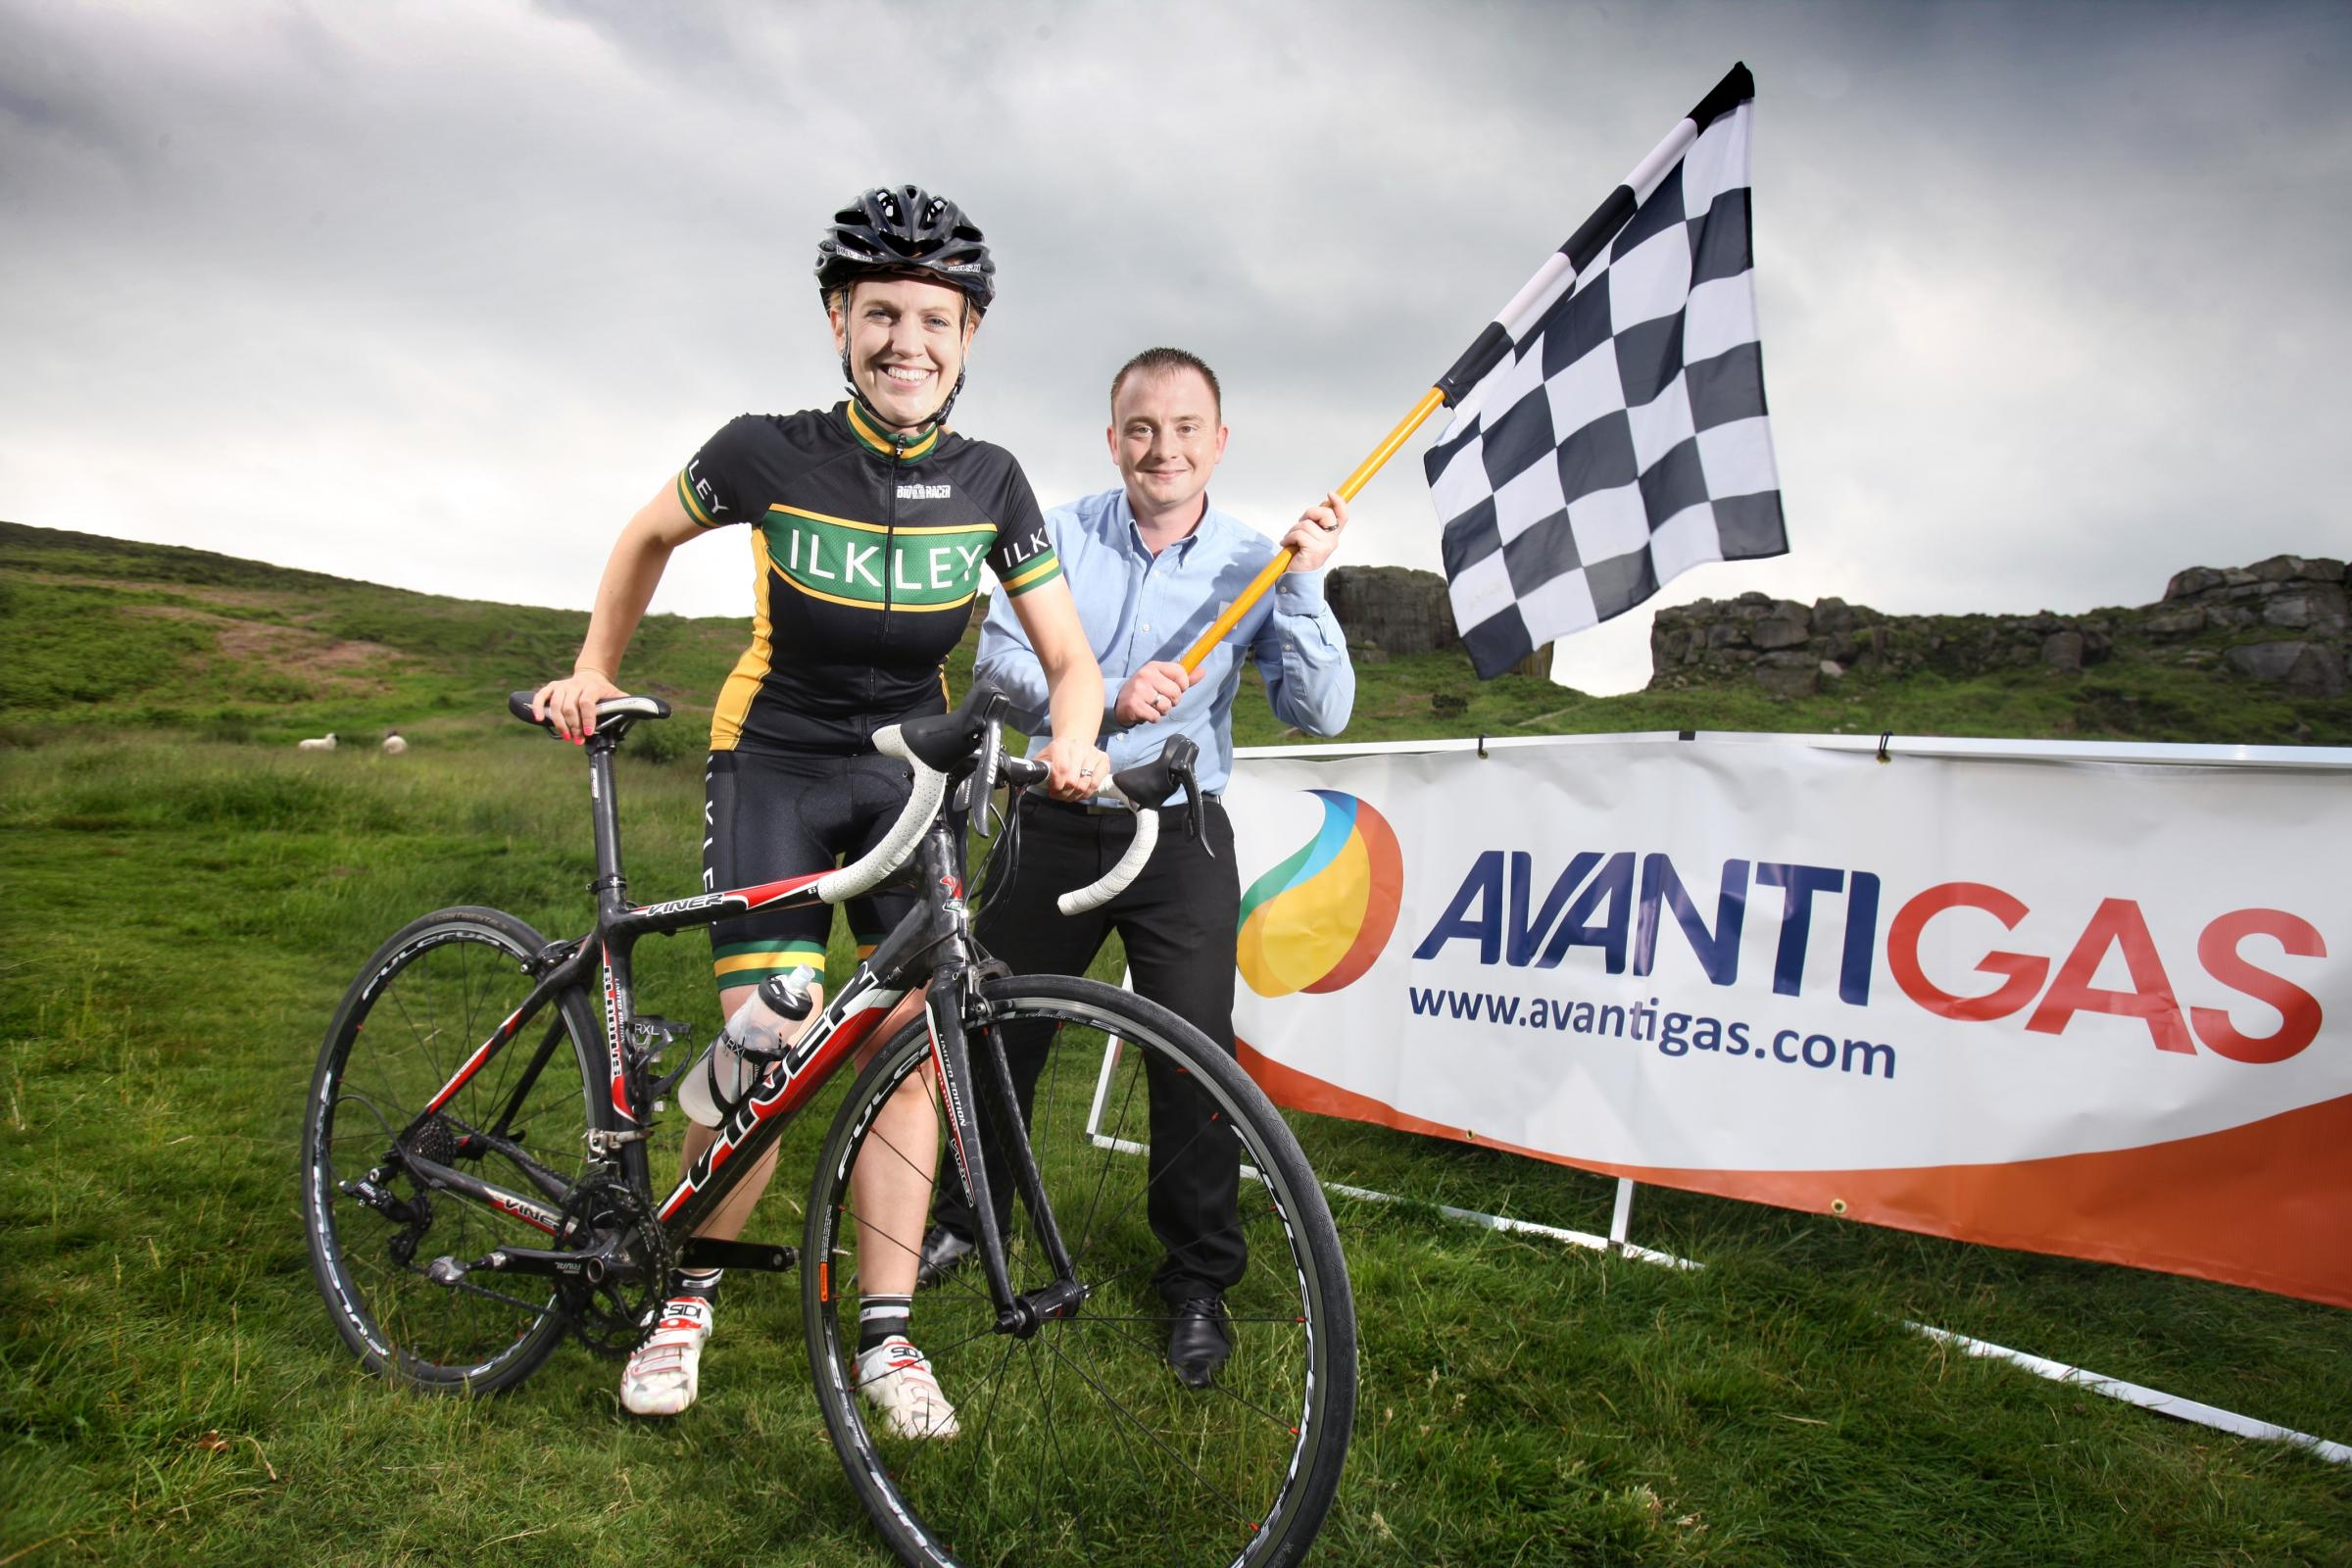 Picture:  Lorne Campbell / GuzelianReady for the race – Emily Hallworth from Ilkley Cycling Club and Dan Eadson from AvantiGas at the Cow and Calf on Ilkley Moor